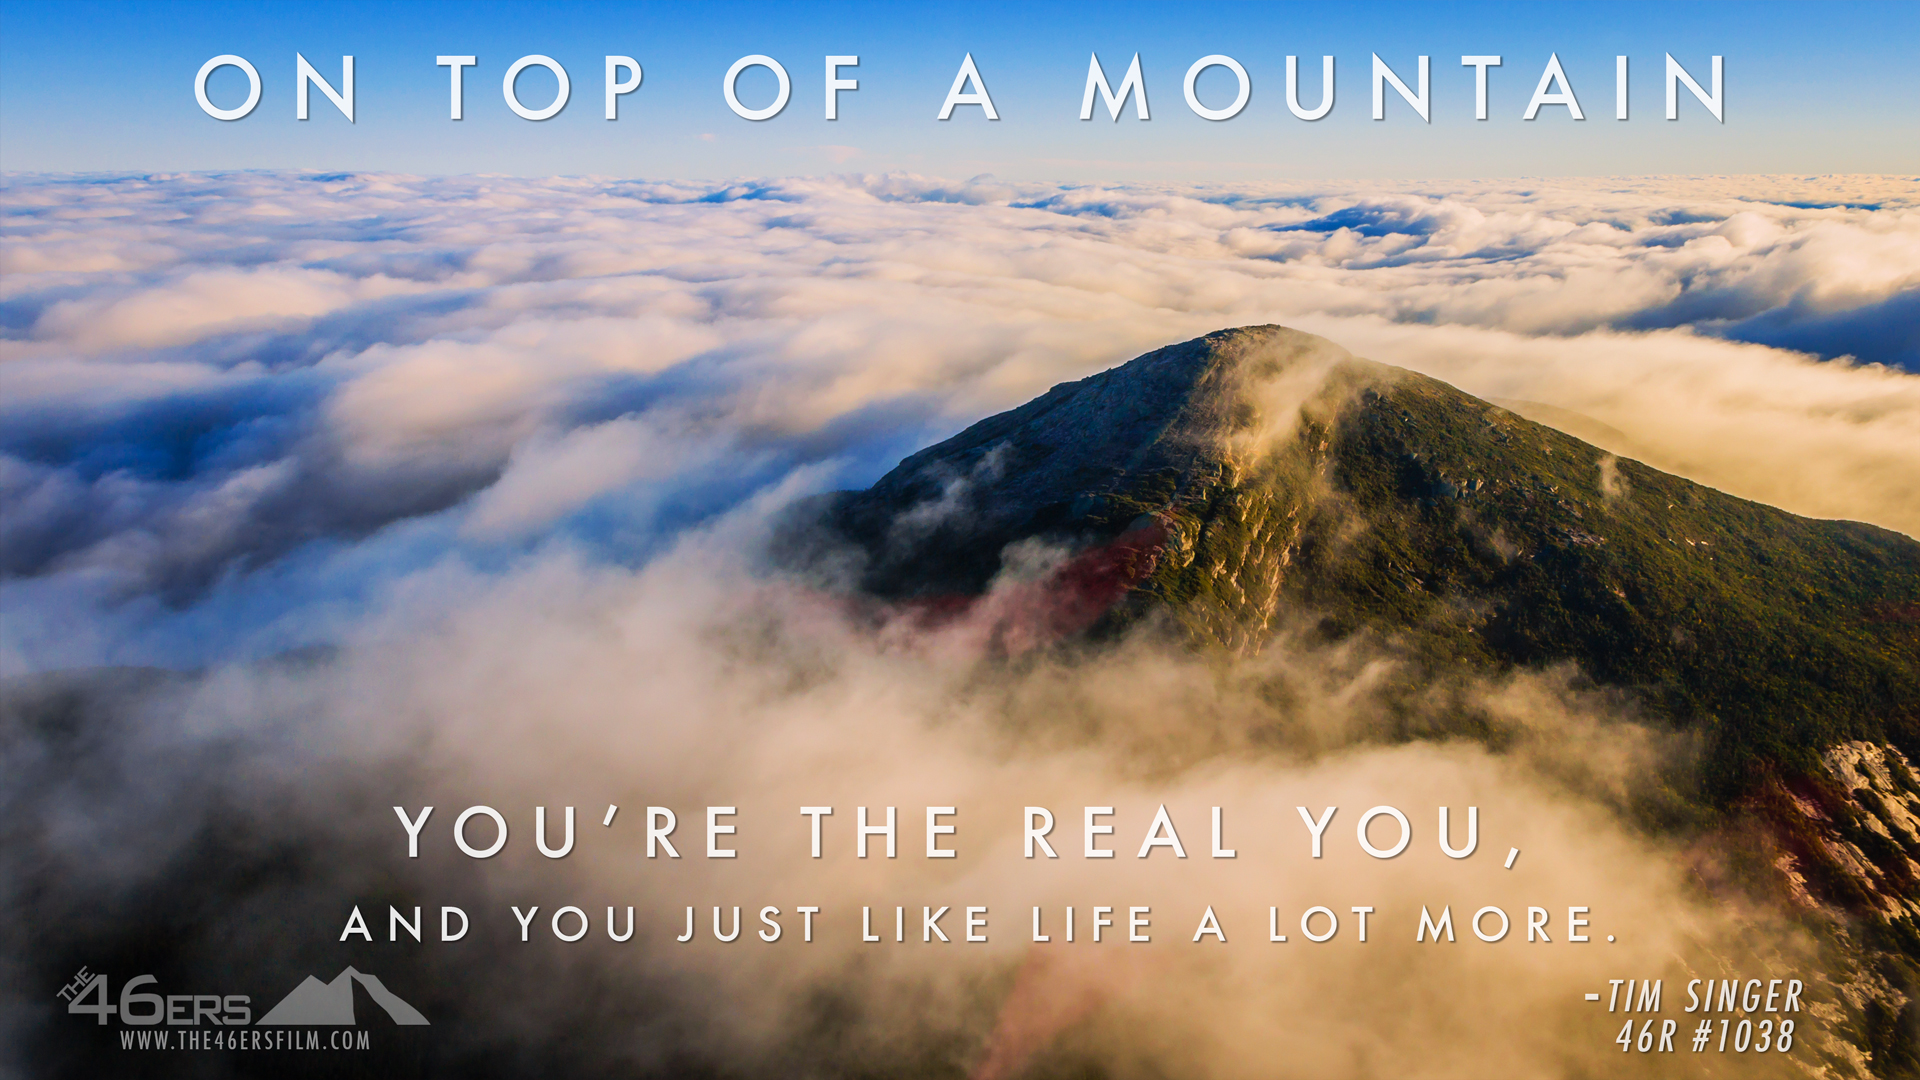 On-top-of-a-mountain-2.jpg